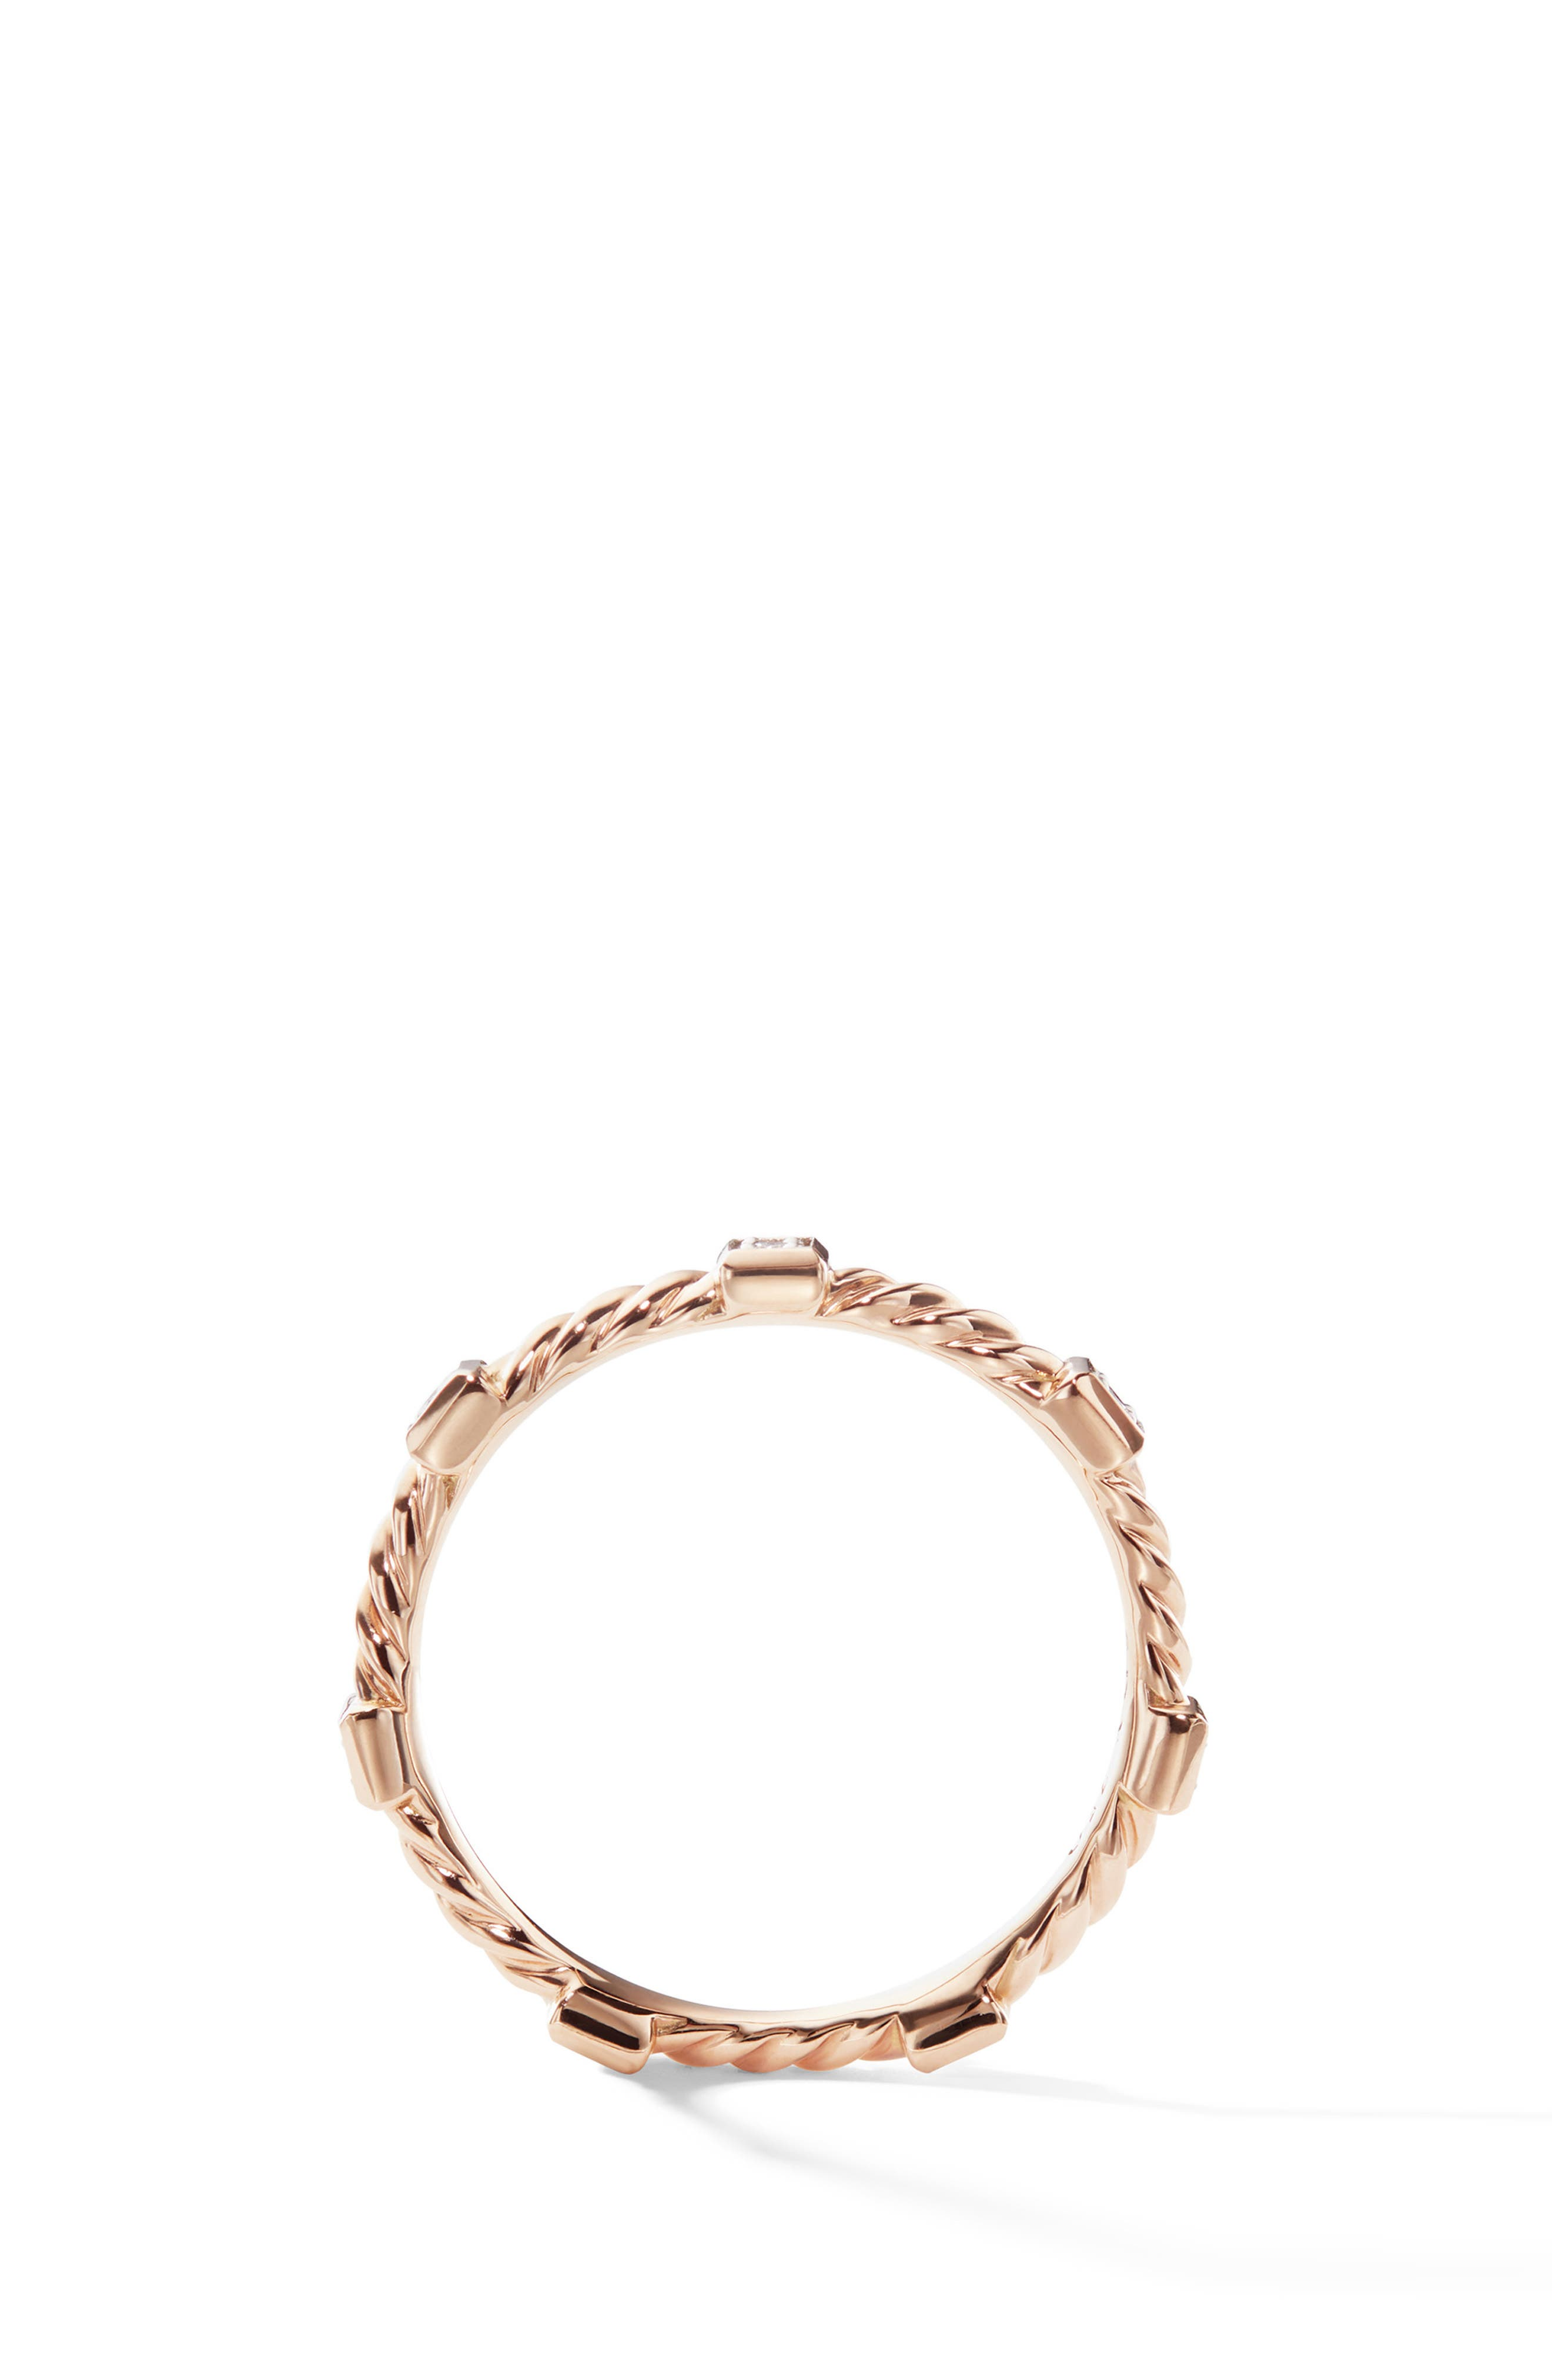 Cable Stack Ring in 18K Rose Gold with Diamonds,                             Alternate thumbnail 2, color,                             ROSE GOLD/ DIAMOND